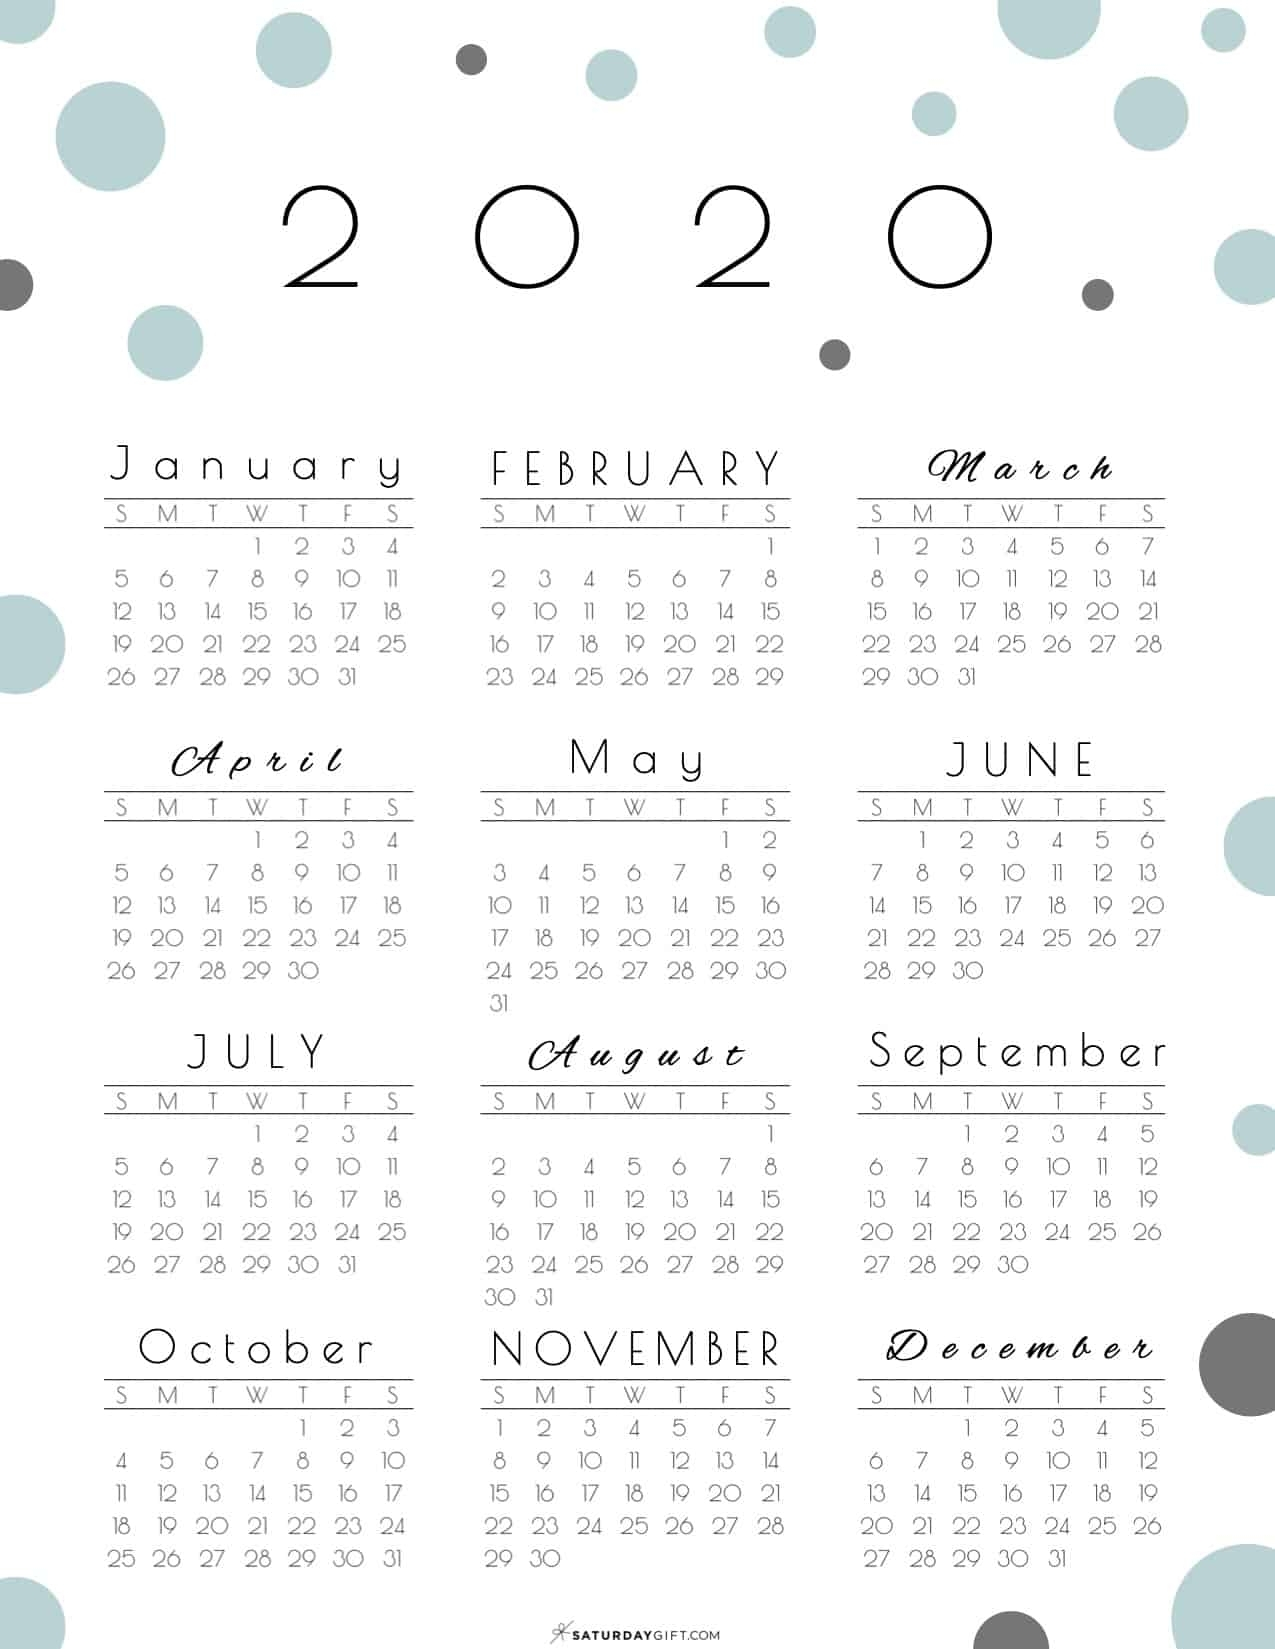 Year At A Glance Calendar 2020 - Pretty (And Free!) Printable inside Year At A Glance Calendar 2020 Free Printable Mondayt Start